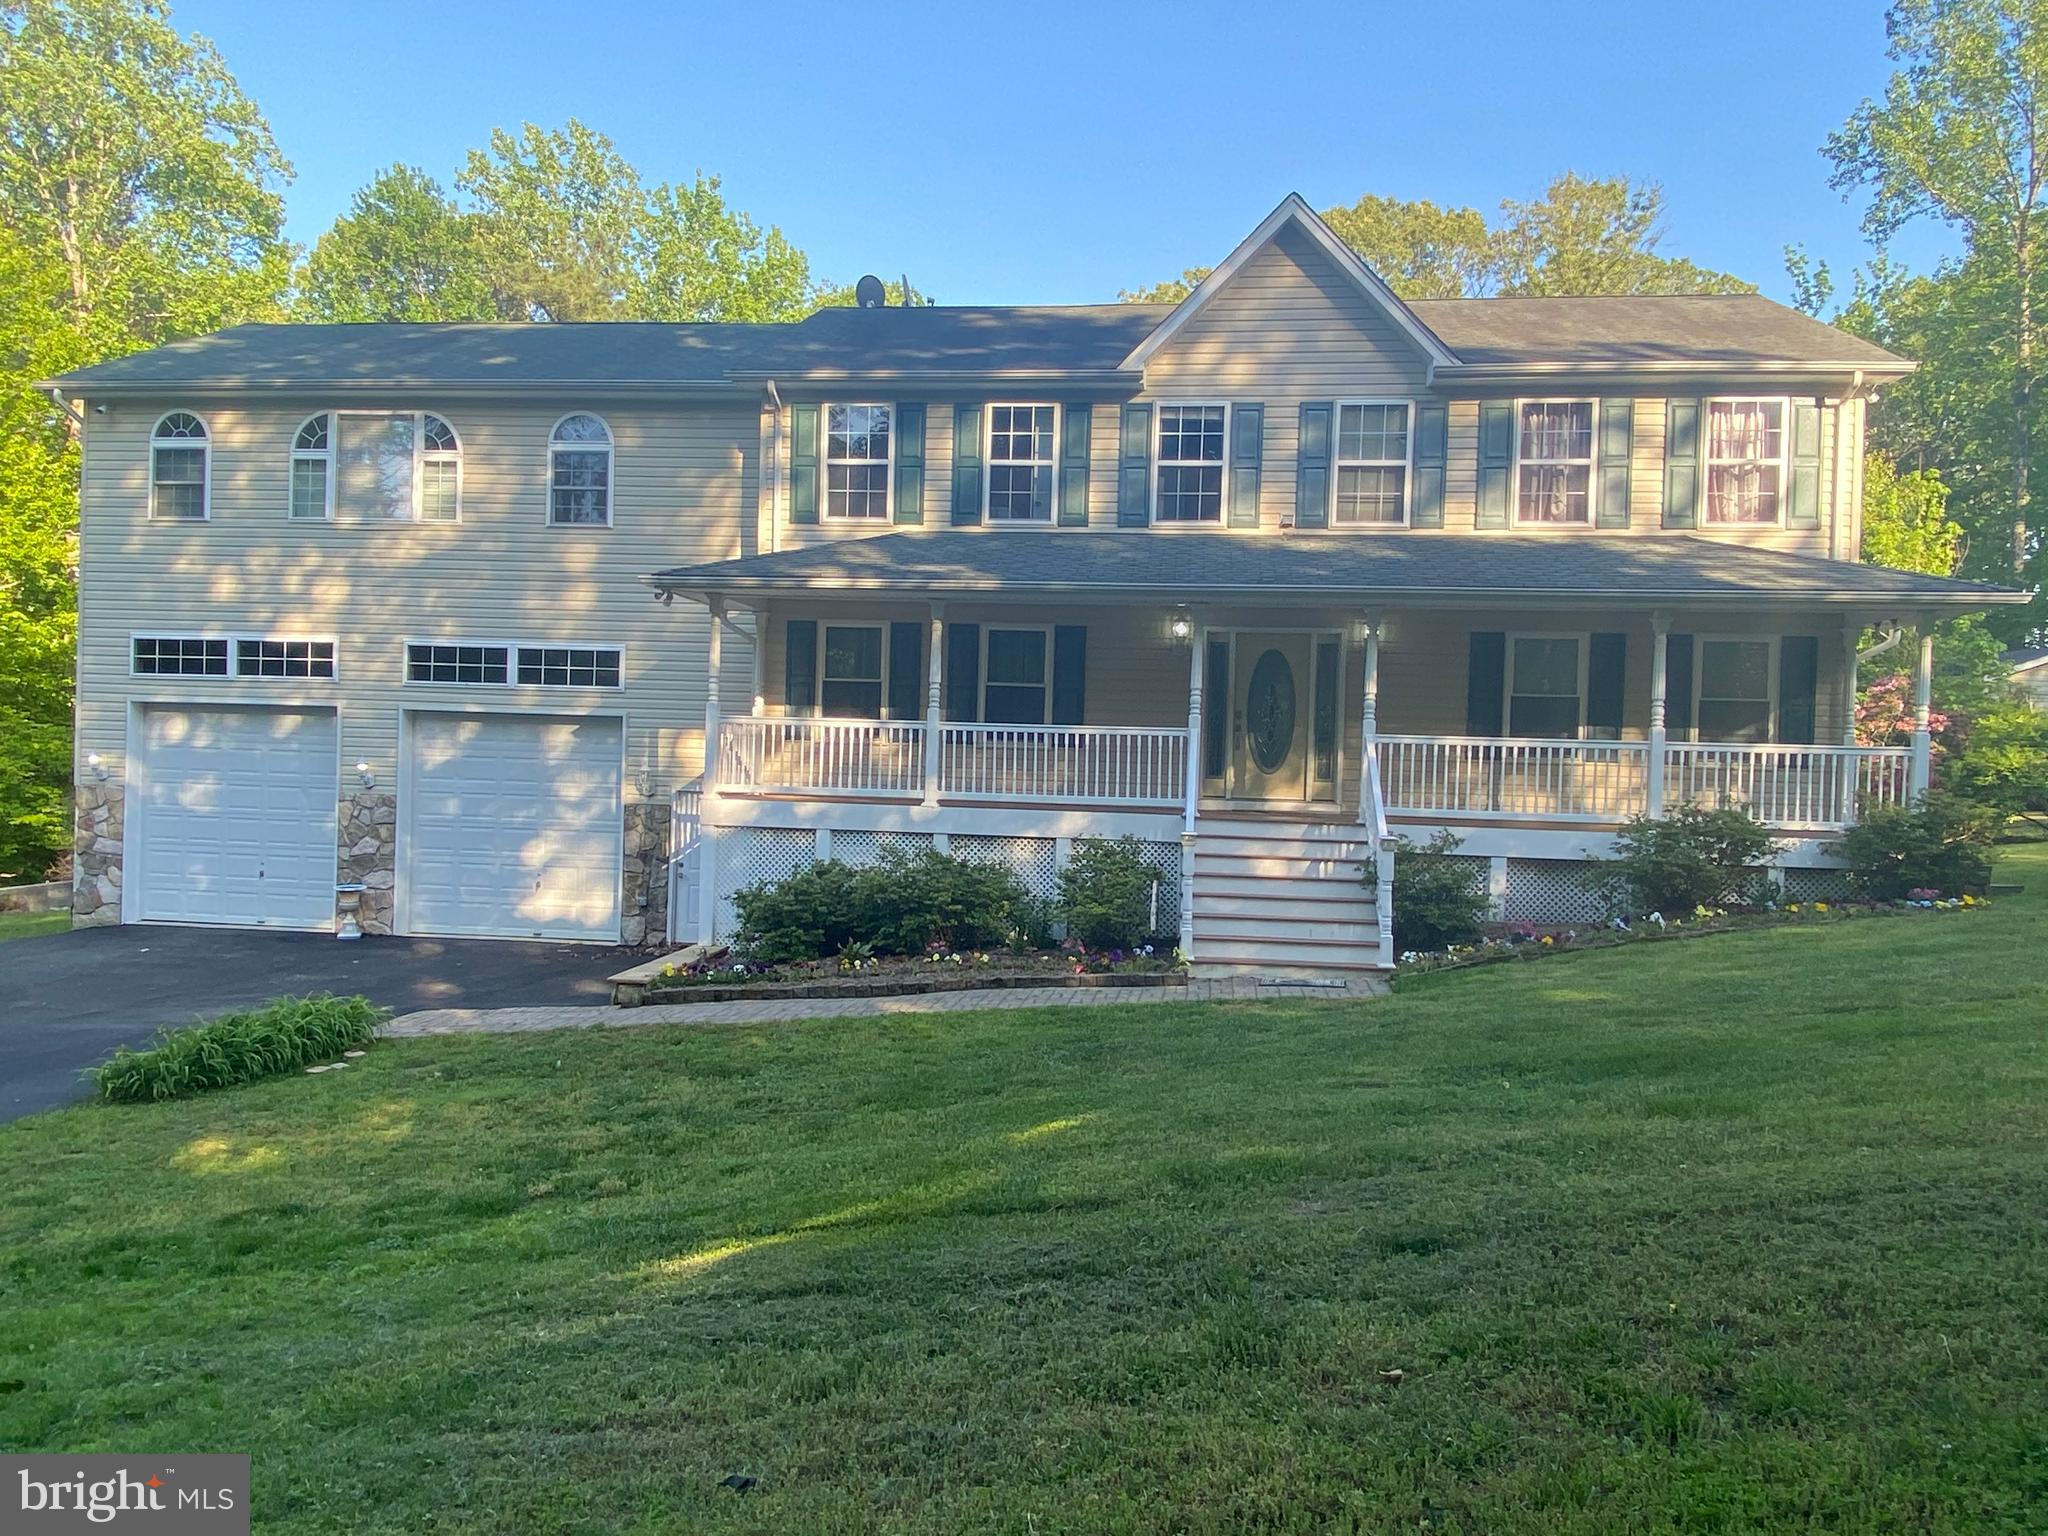 Check out this beautiful Lakefront home in Mechanicsville /Hollywood area. Beautiful outdoor living